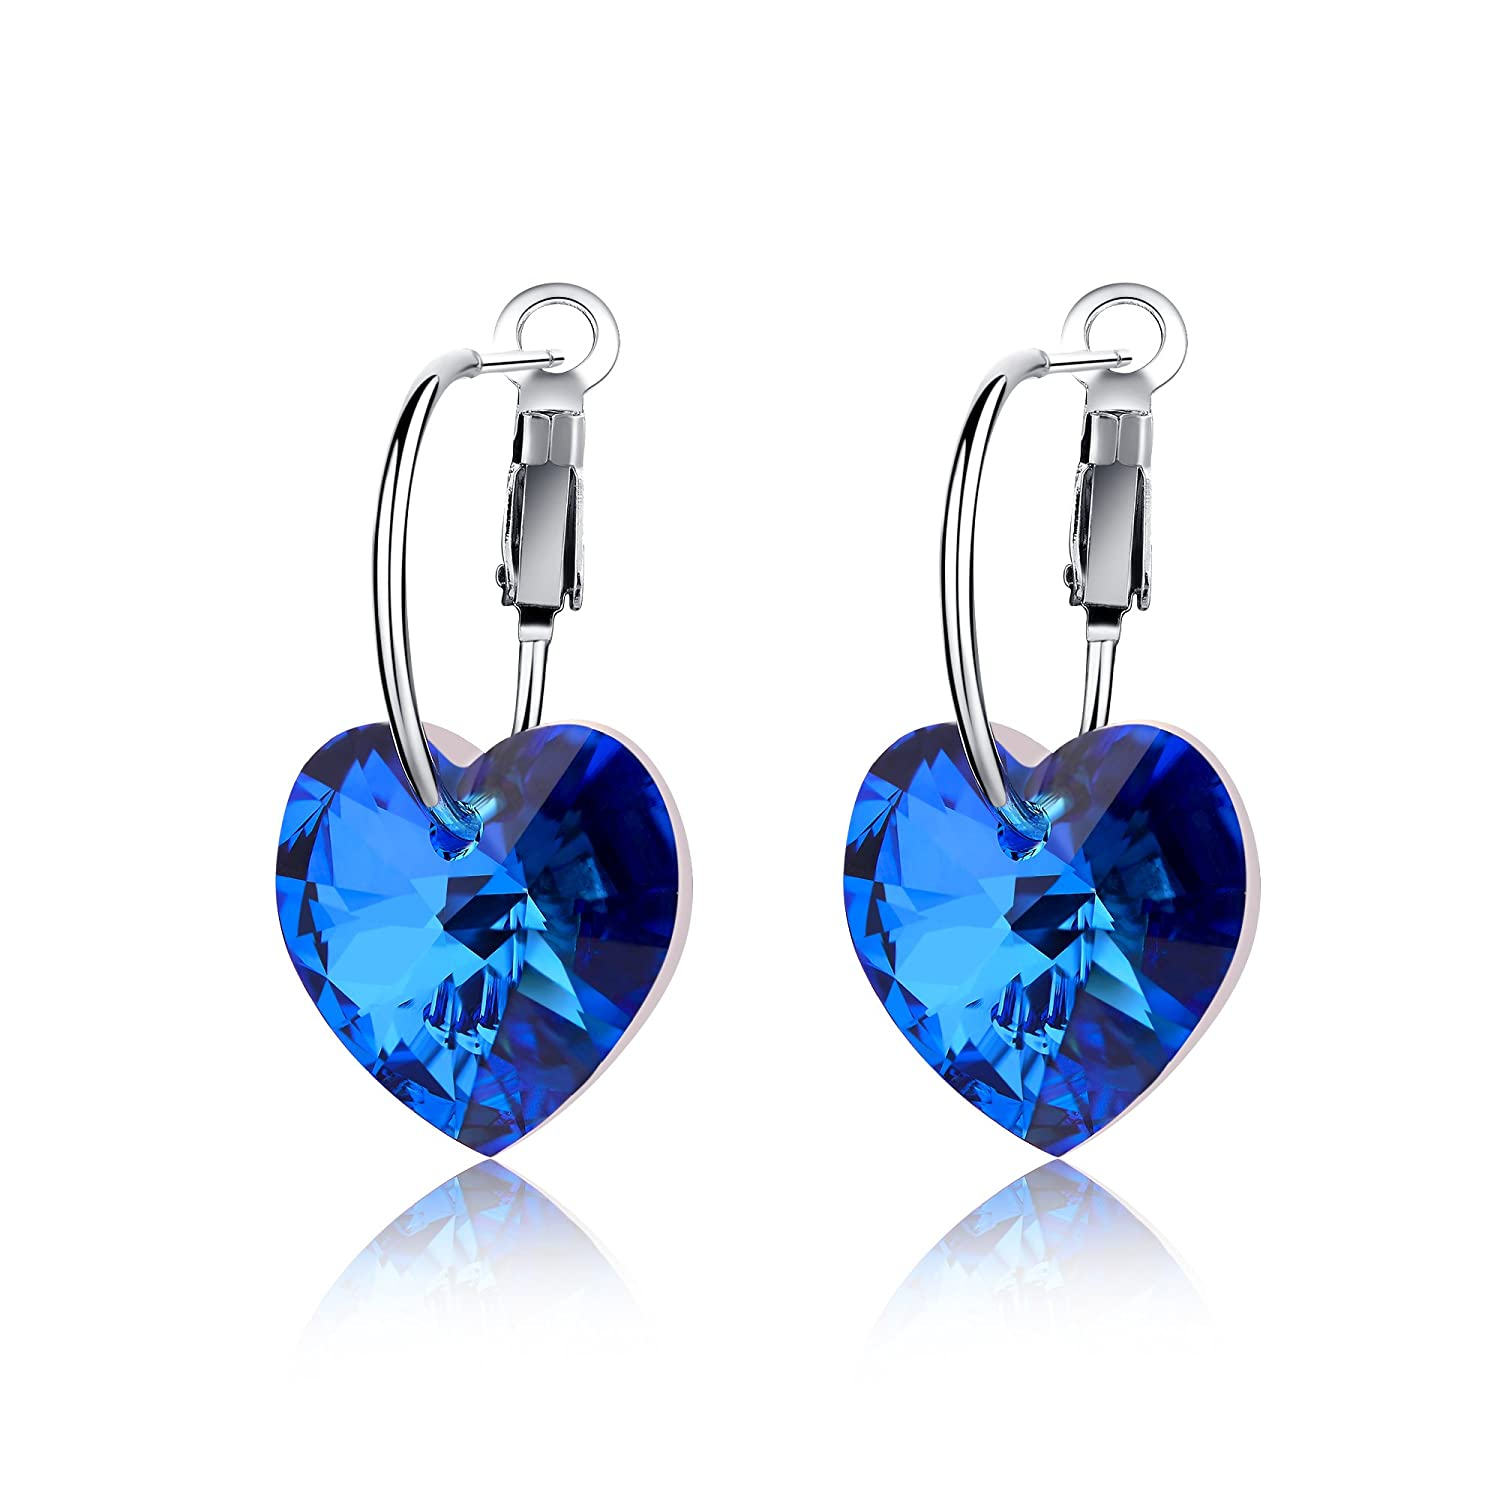 Hoop Earrings Jewelry & Accessories Capable Lovely Pretty Silver Plated Earrings For Women Wholesale Free Shipping Charm Christmas Gifts Fashion 925 Jewelry E289 Year-End Bargain Sale